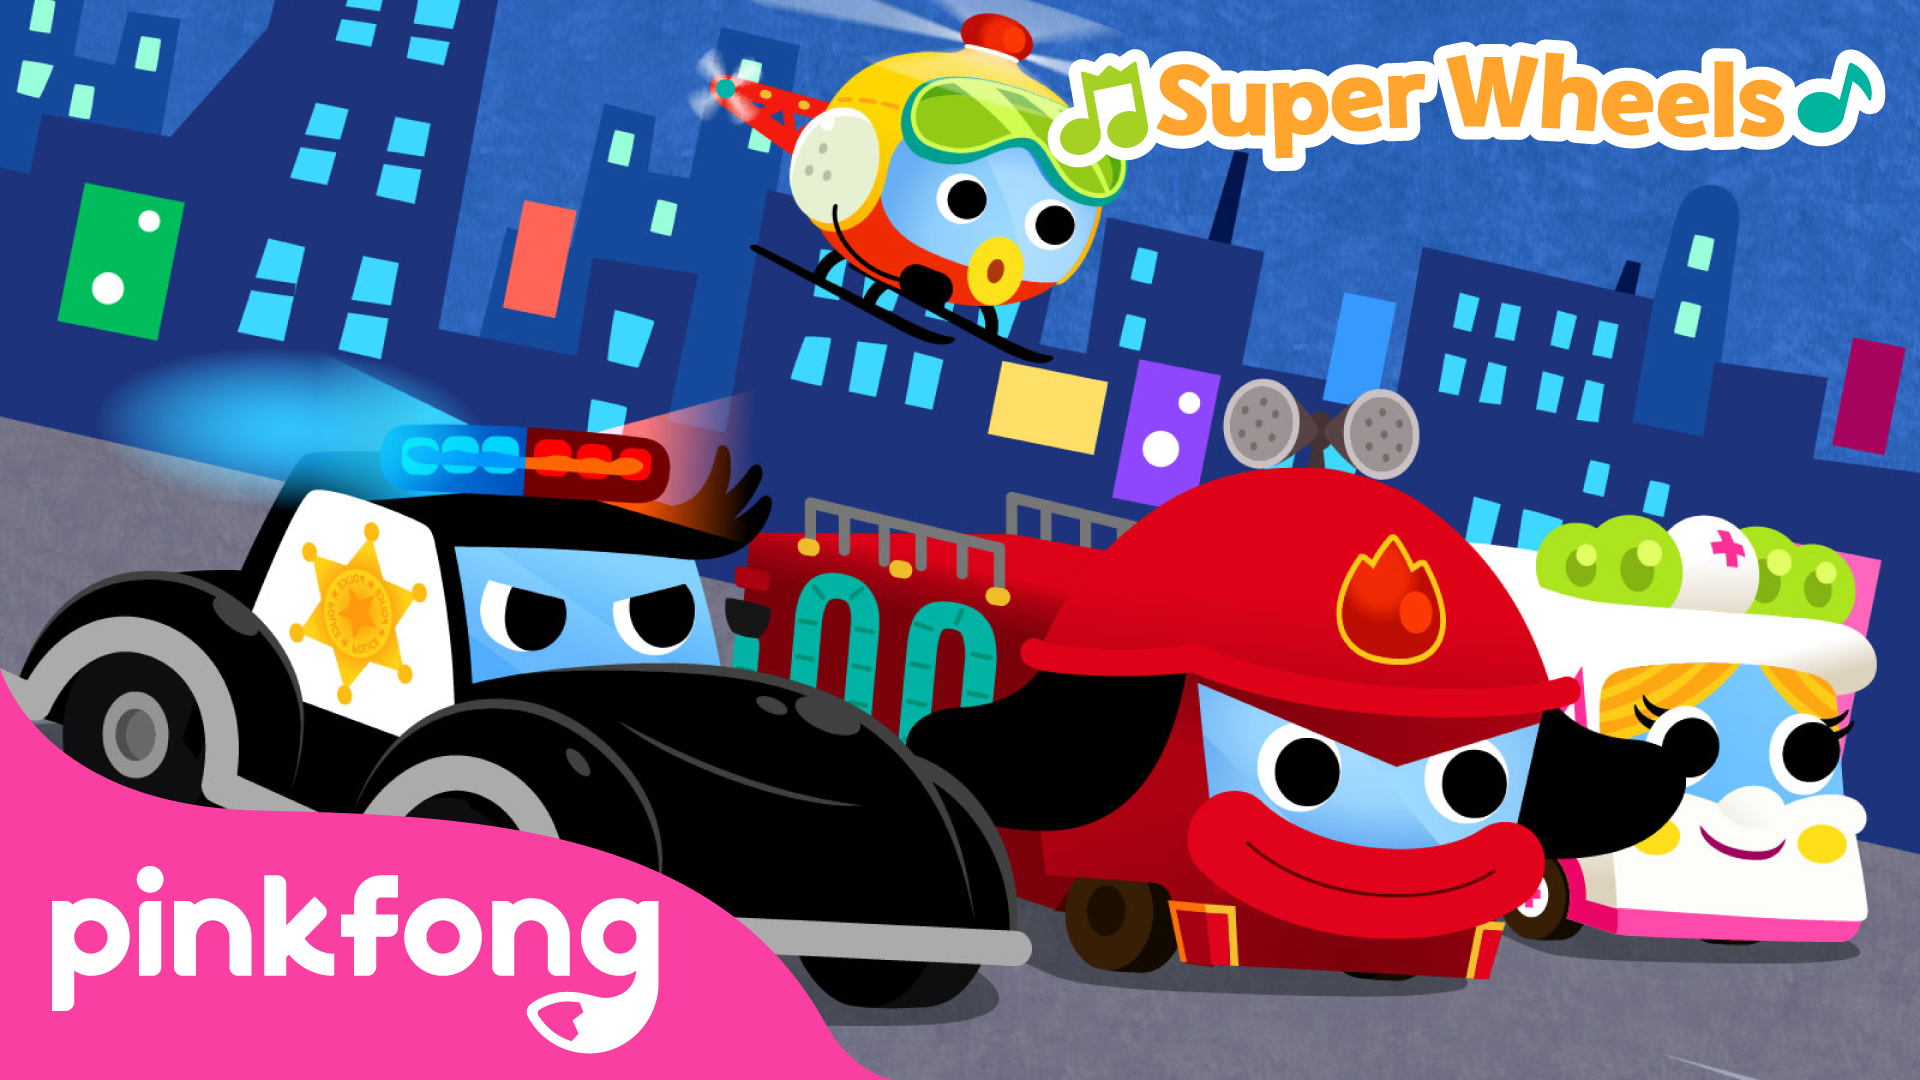 Pinkfong! Super Wheels (Cars, Trucks, Buses and More)